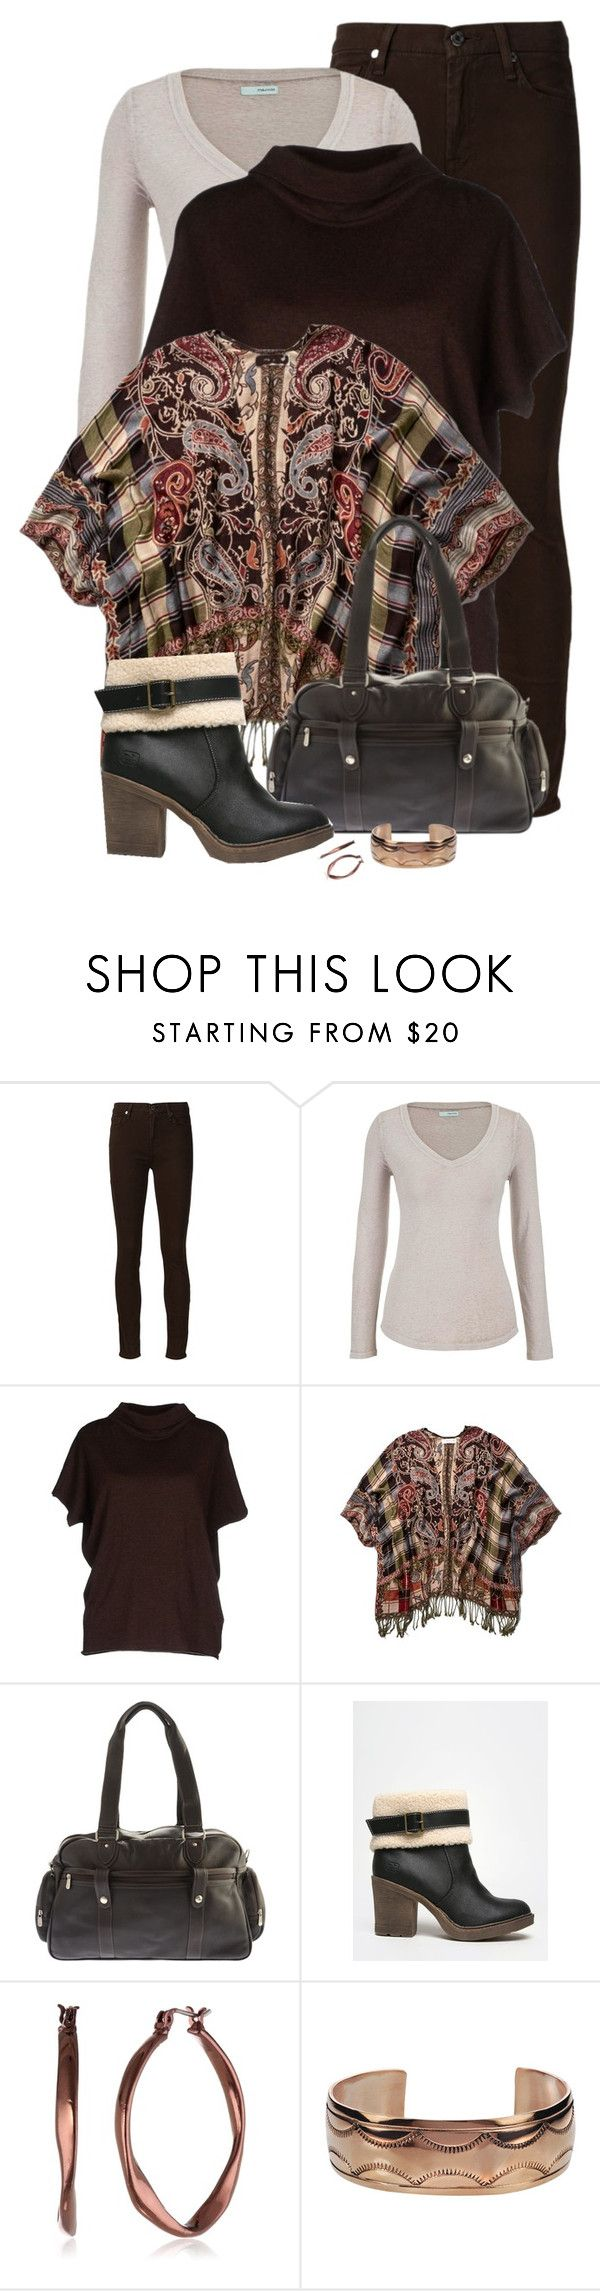 """1/10/16 Layers"" by tararanee ❤ liked on Polyvore featuring 7 For All Mankind, maurices, Alpha Studio, Abercrombie & Fitch, Piel Leather, Dirty Laundry and Vintage America"